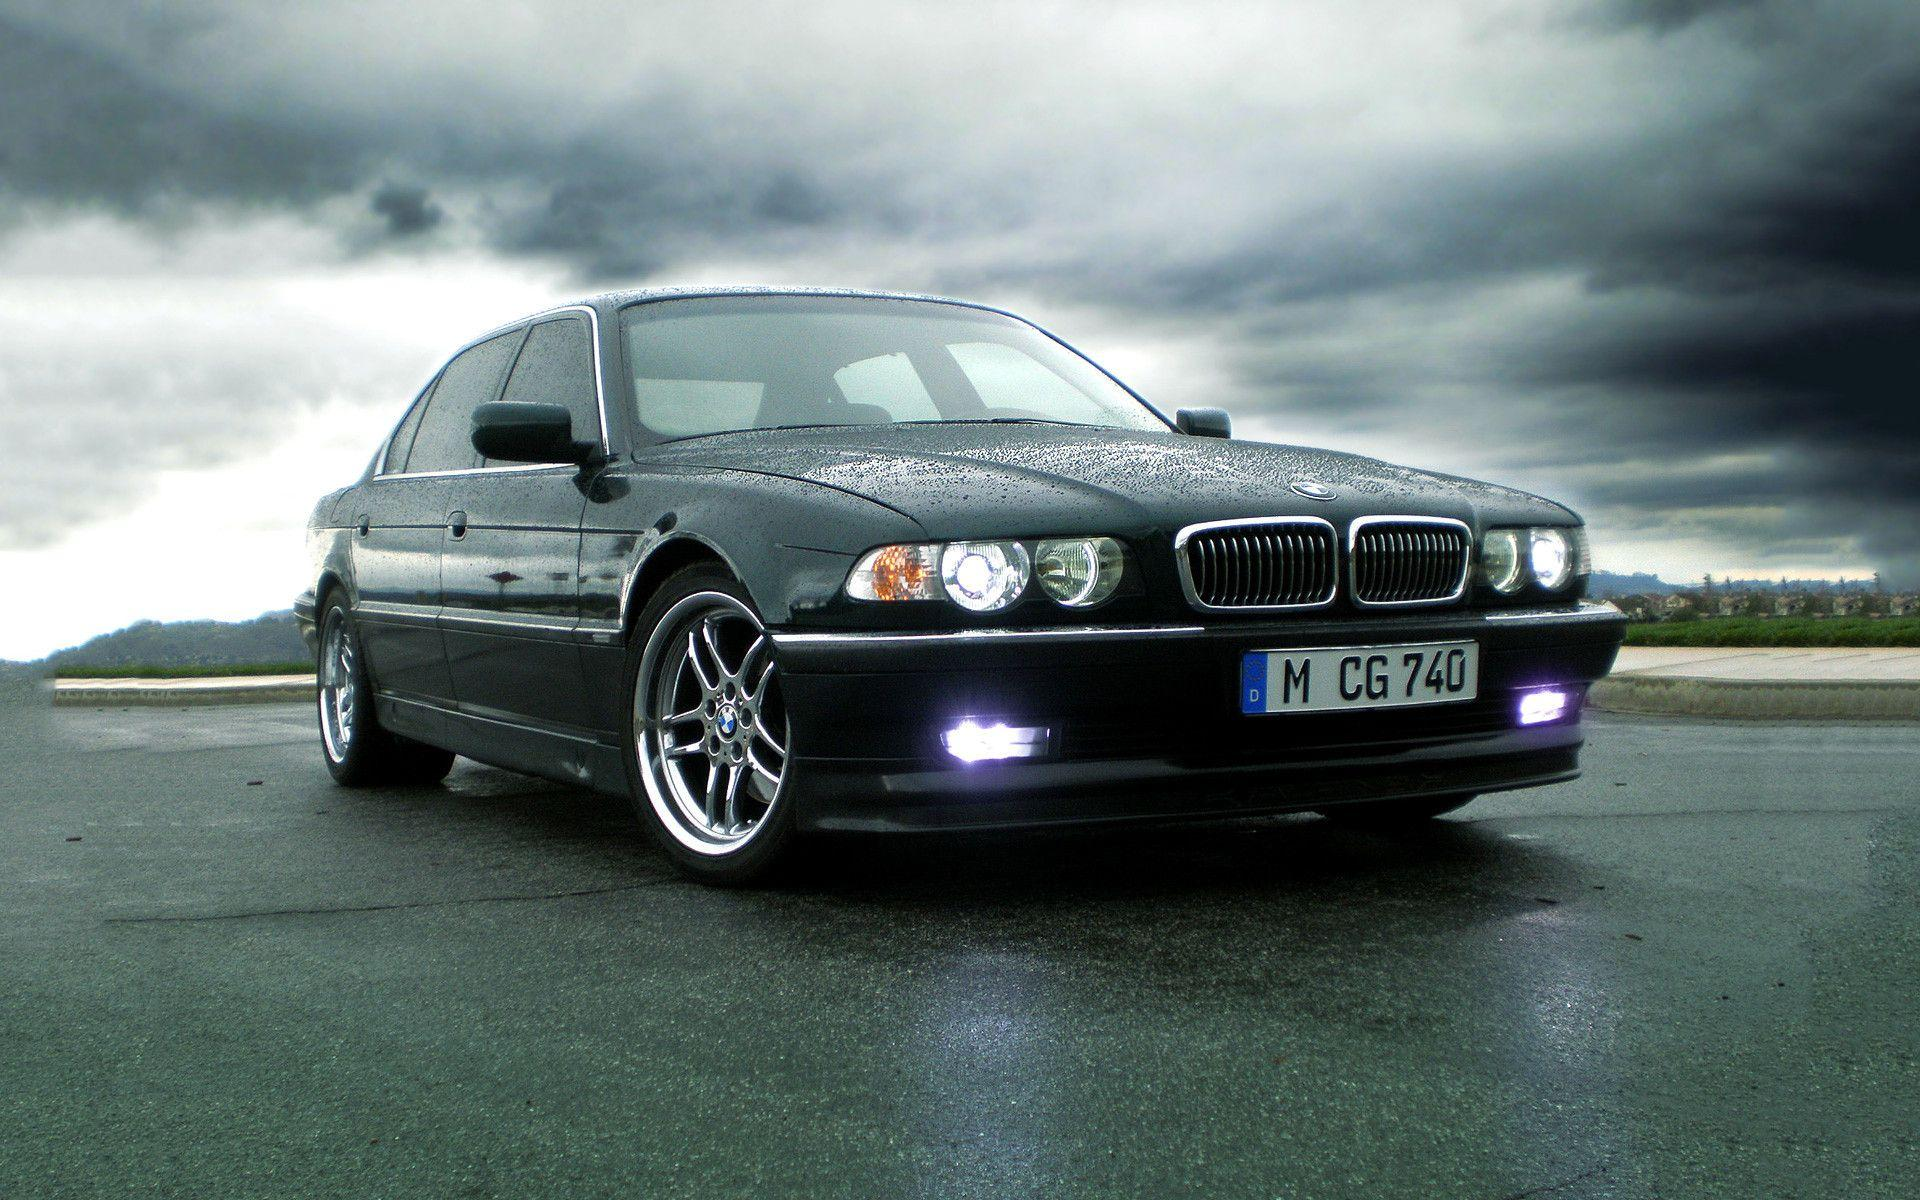 BMW 7 Series Wallpaper Backgrounds